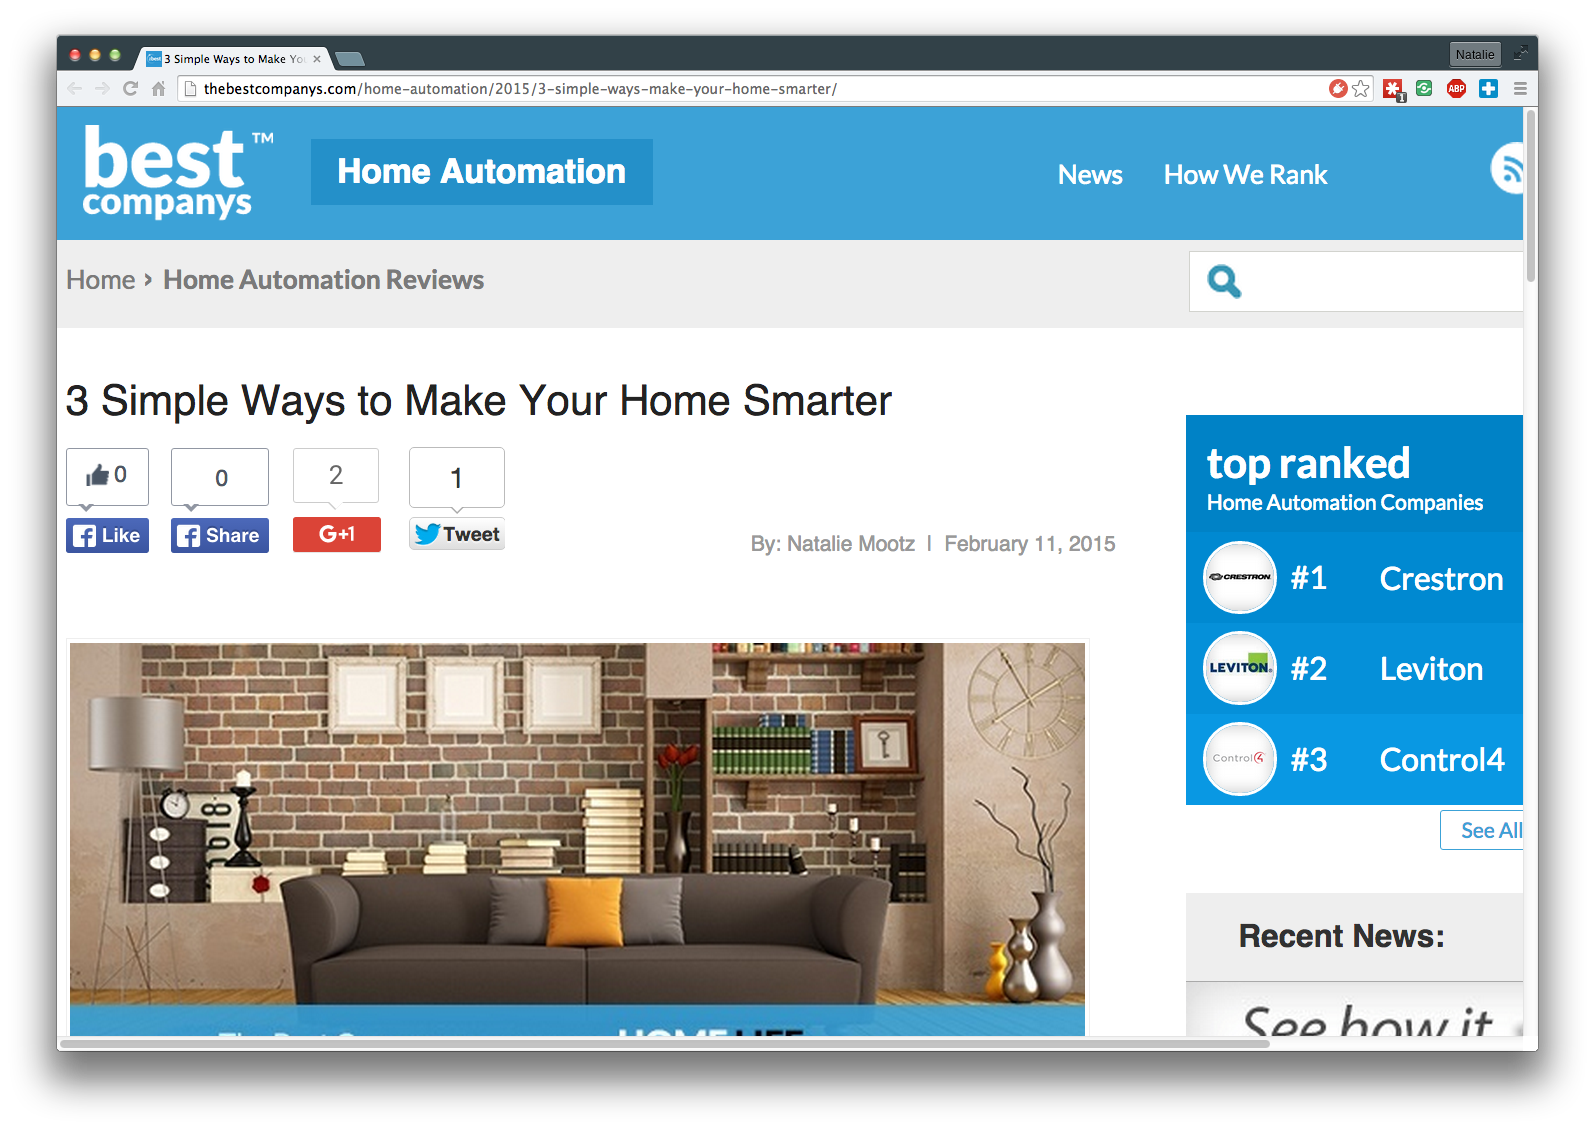 3 Simple Ways to Make Your Home Smarter